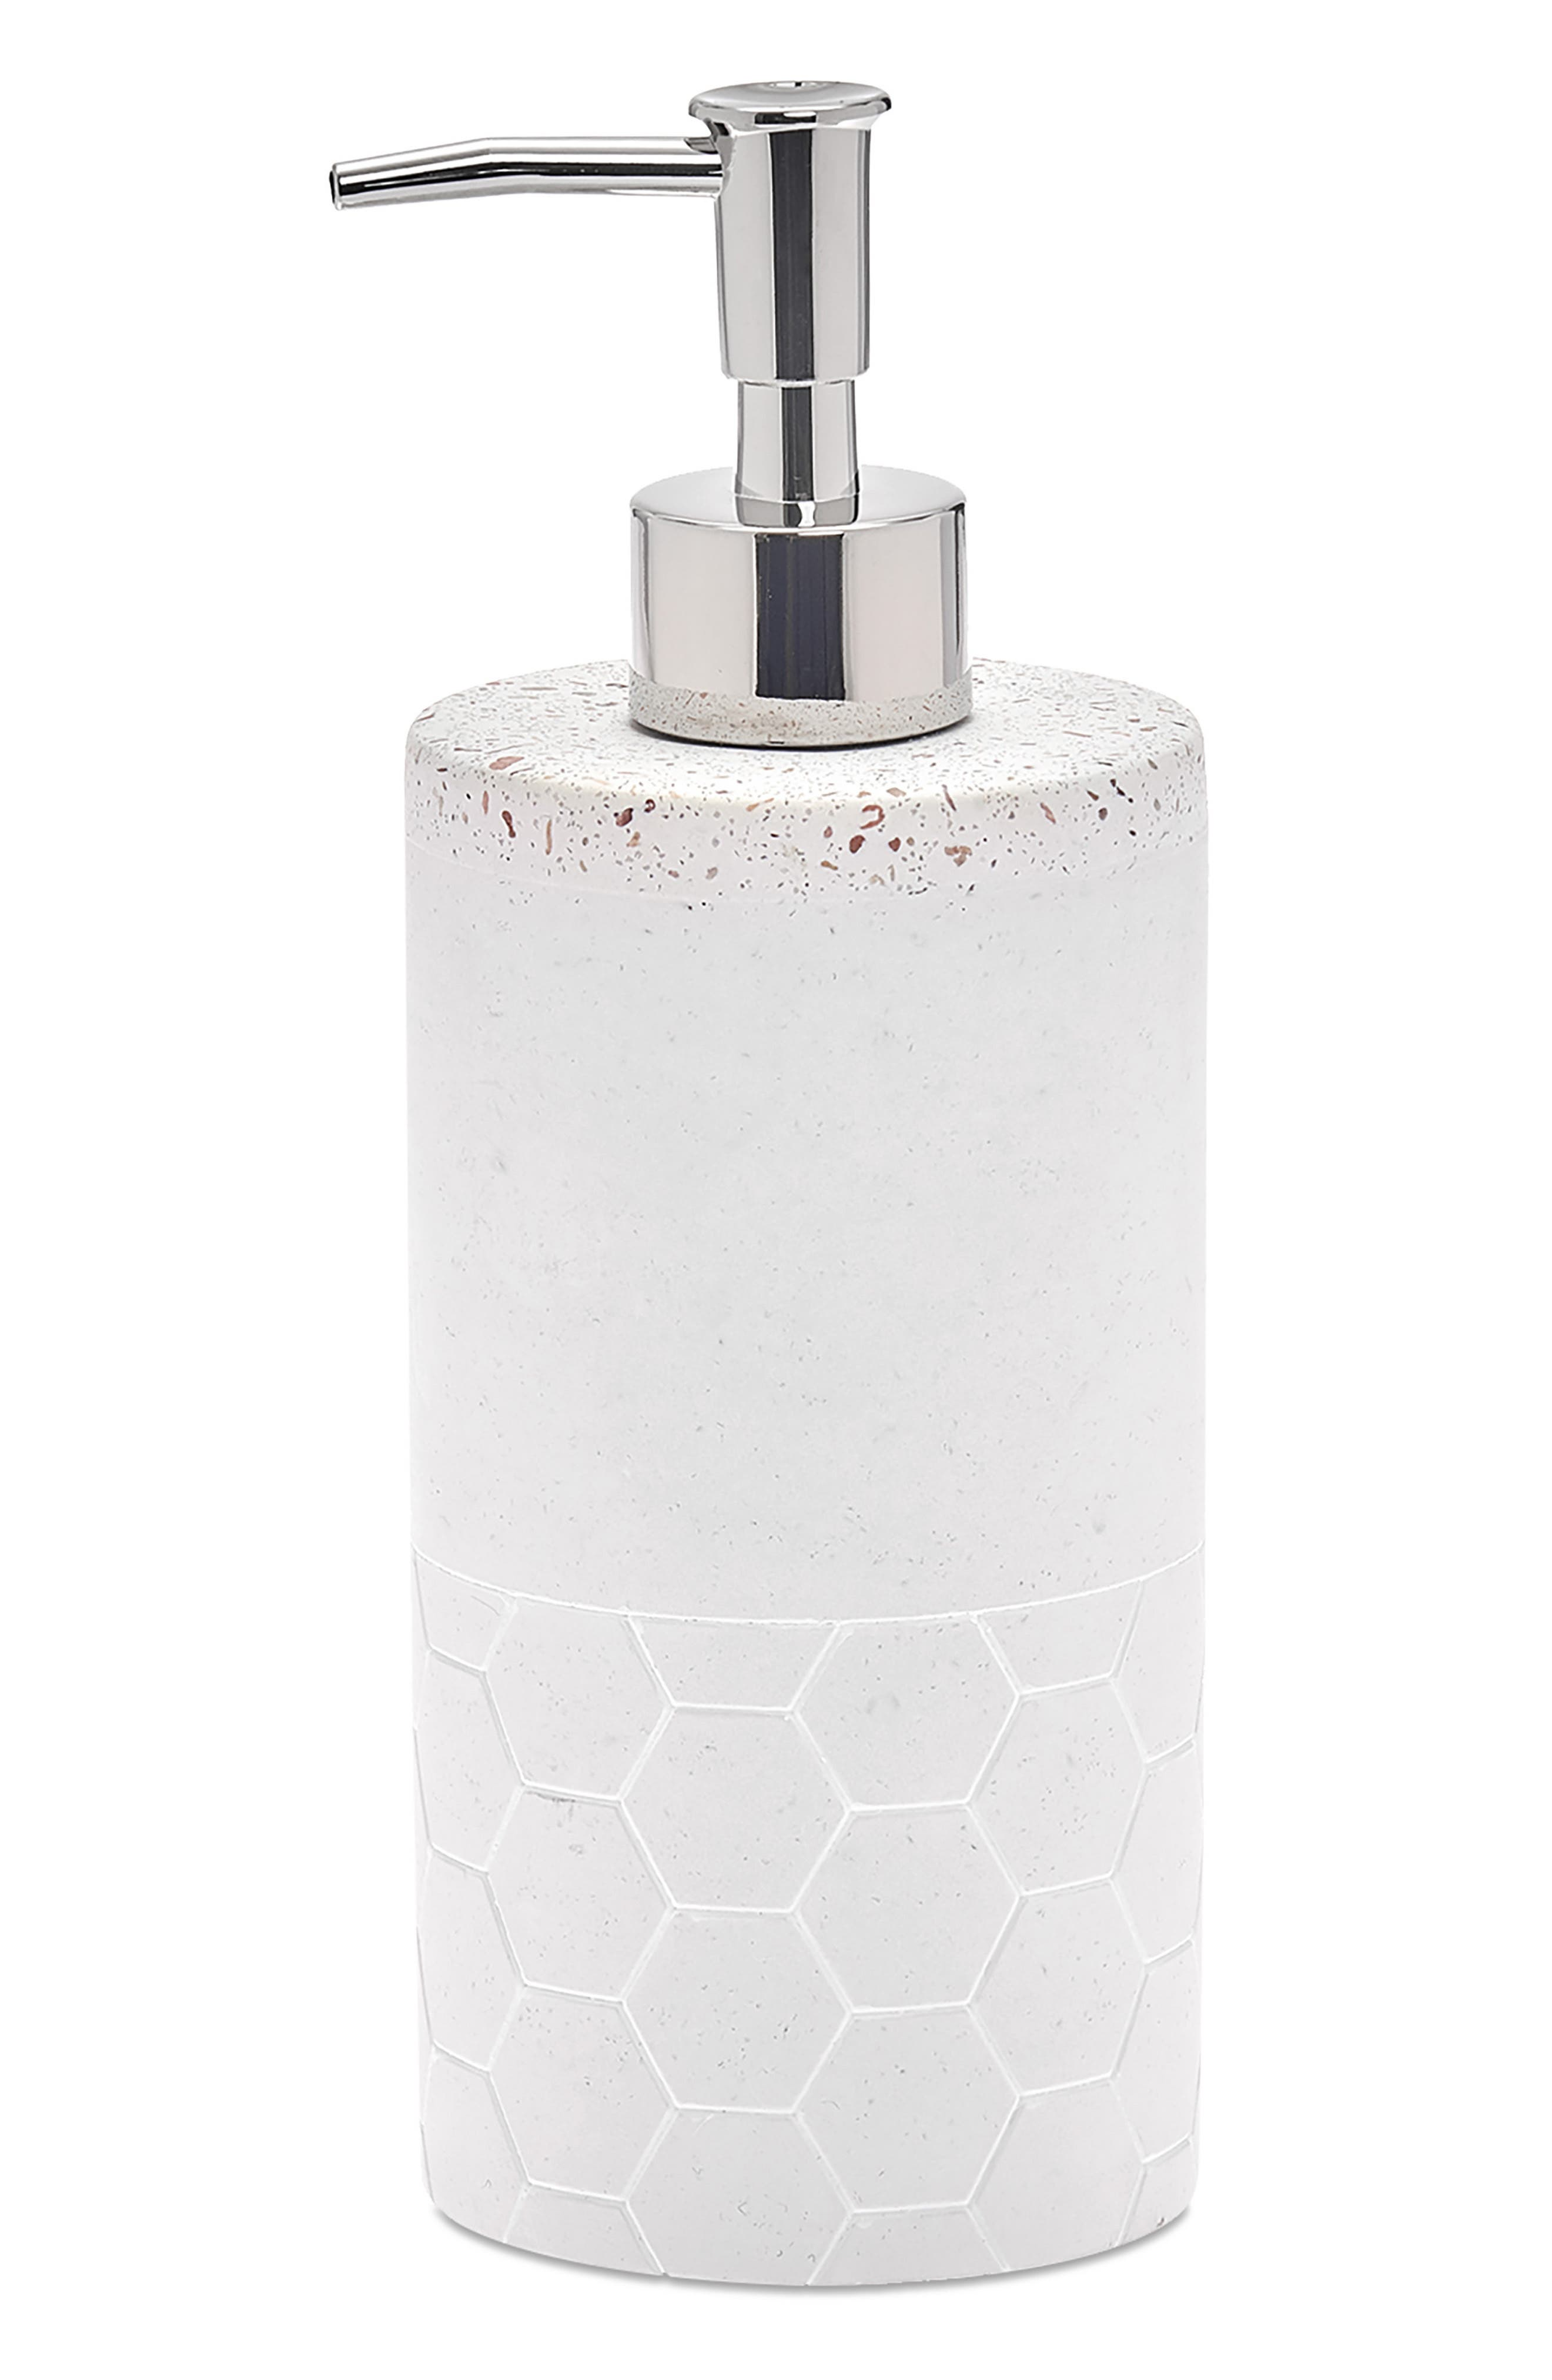 Terrazzo pebbles bring earthy texture and color to a striking cement lotion dispenser that will instantly elevate your bathroom decor. Style Name: UGG Lotion Dispenser. Style Number: 6052086. Available in stores.